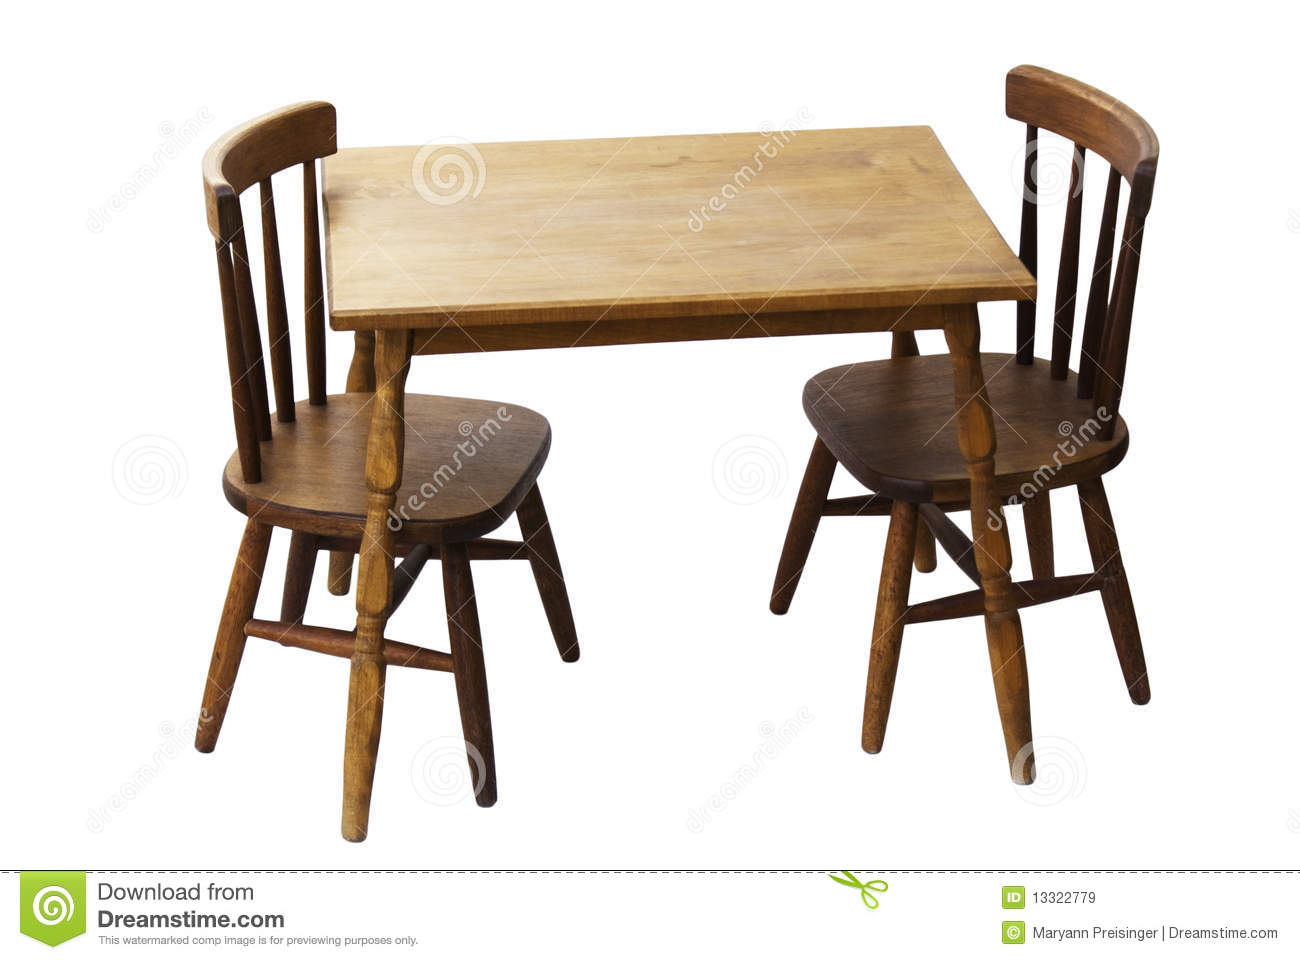 Children S Child Wood Table And Chairs Isolated Stock